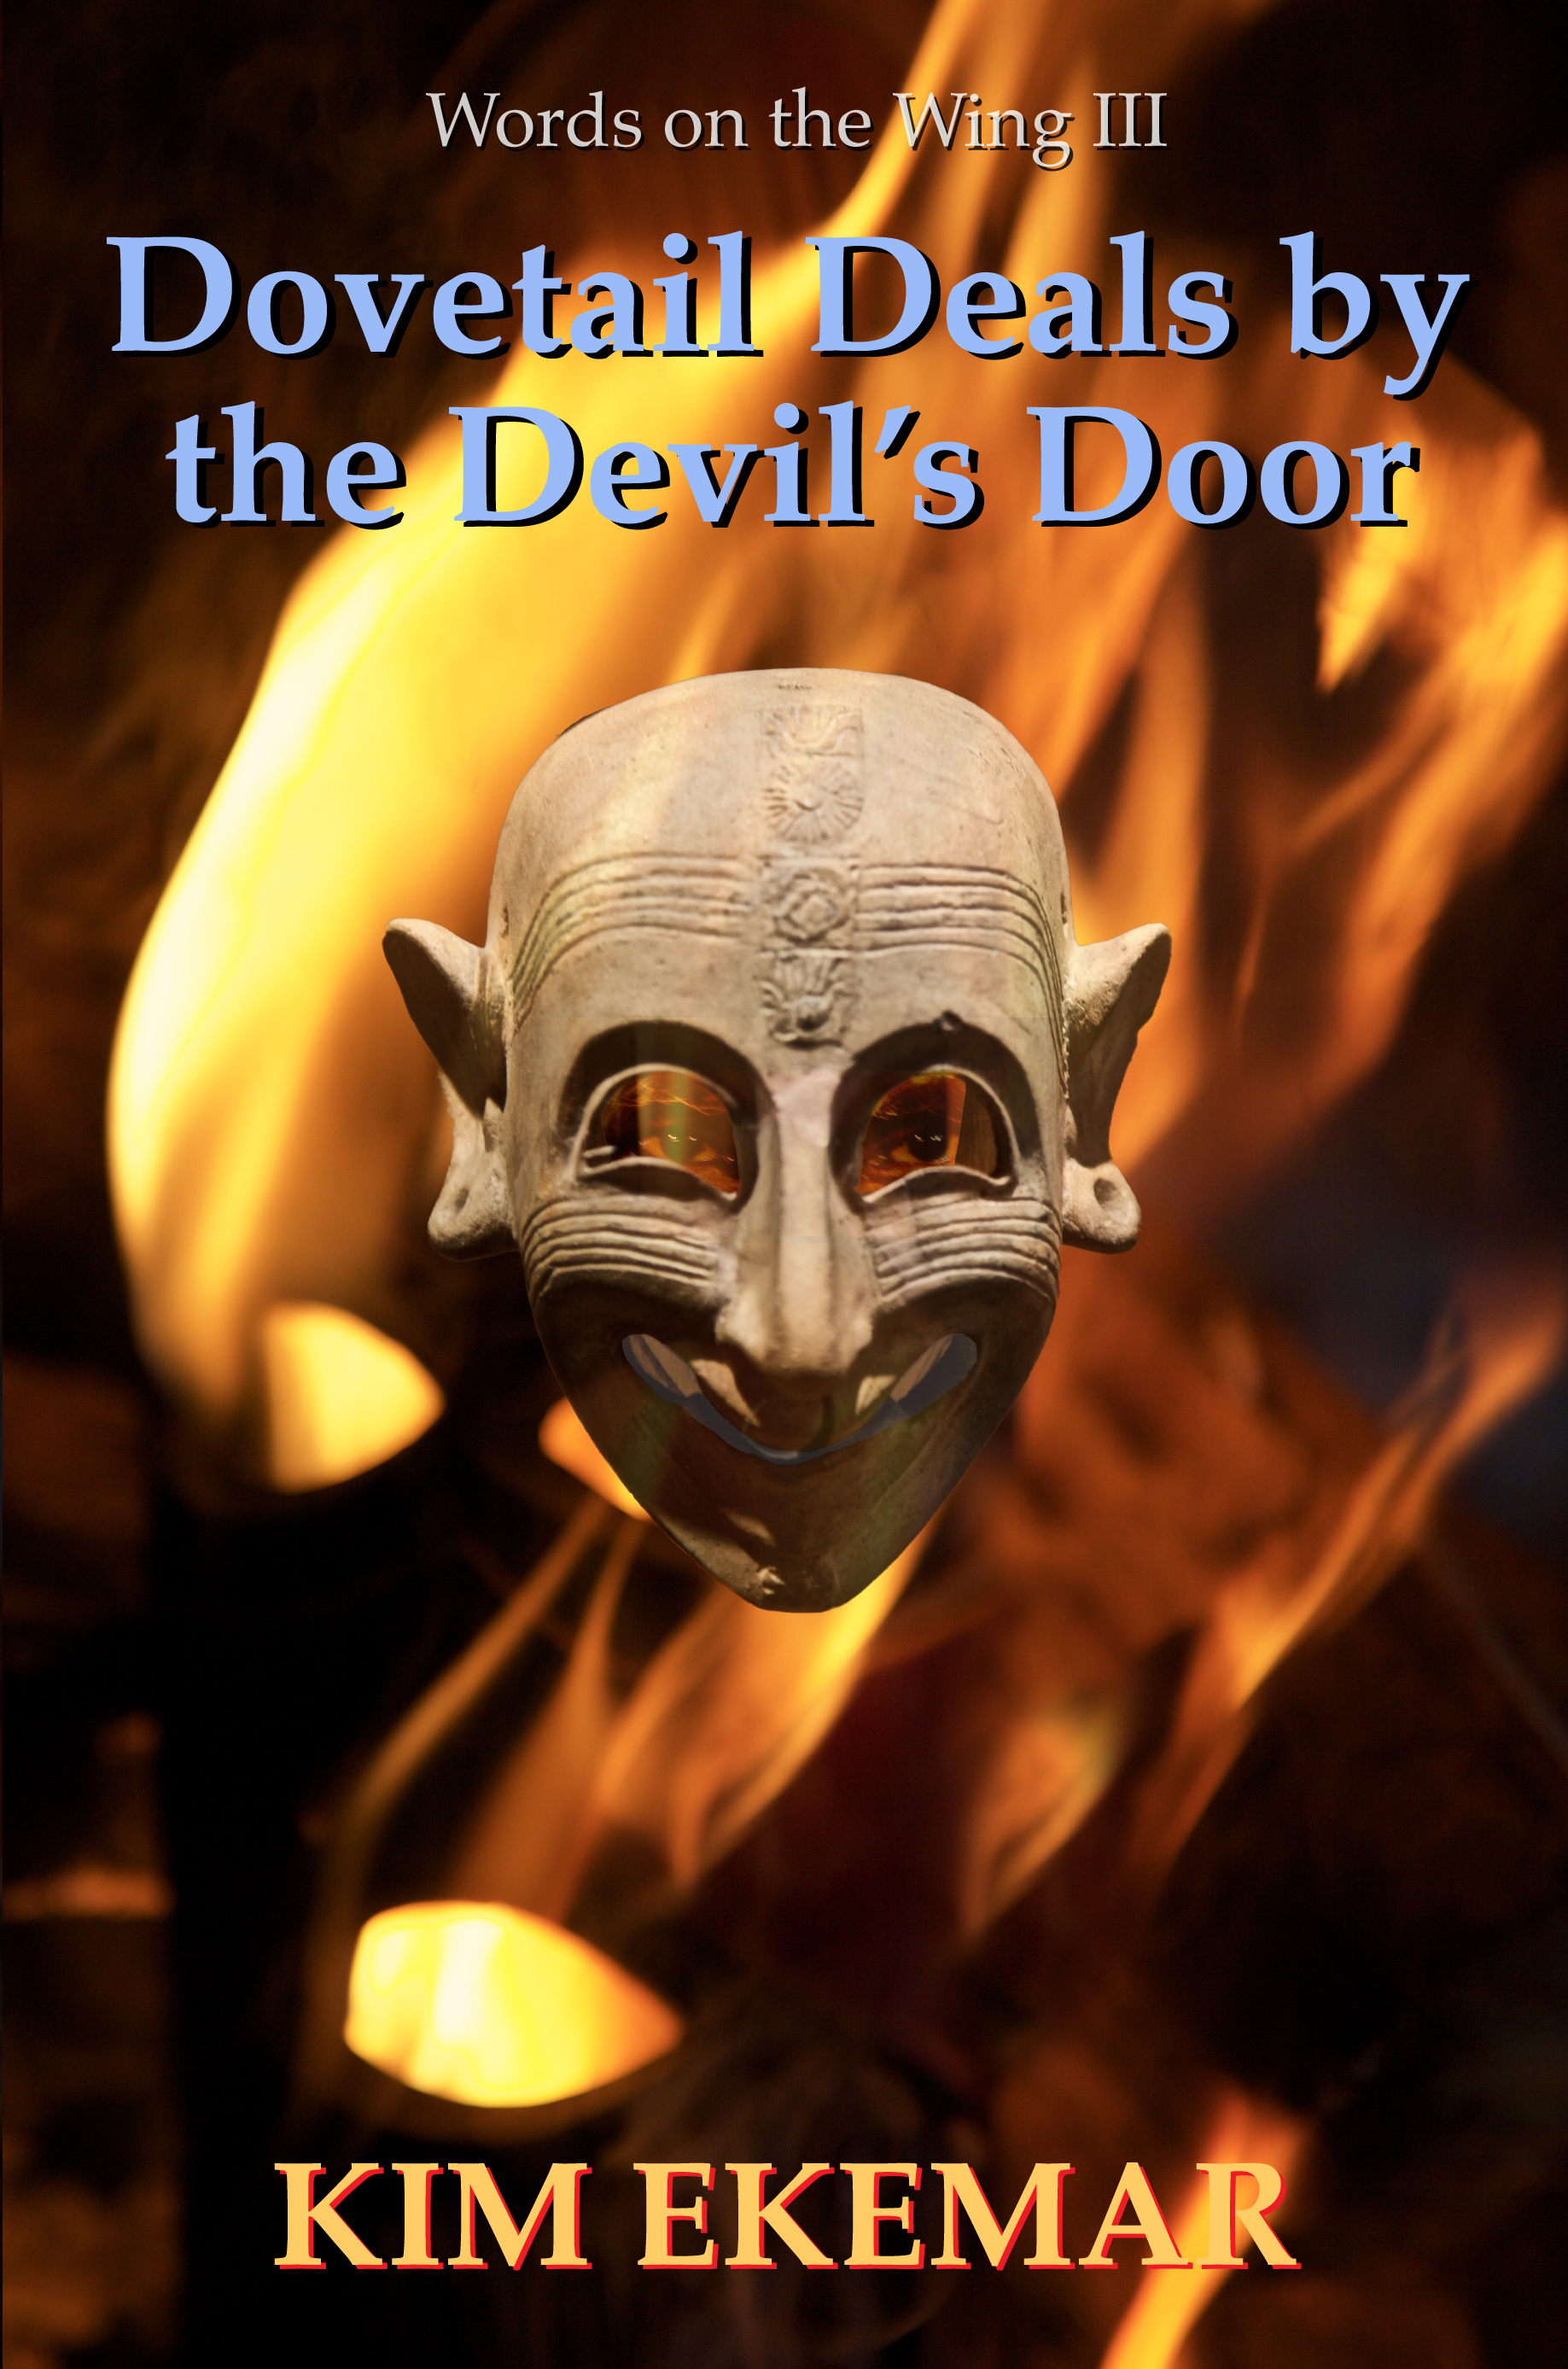 180529 EBOOK Dovetail Deal by the Devil's Door.jpg